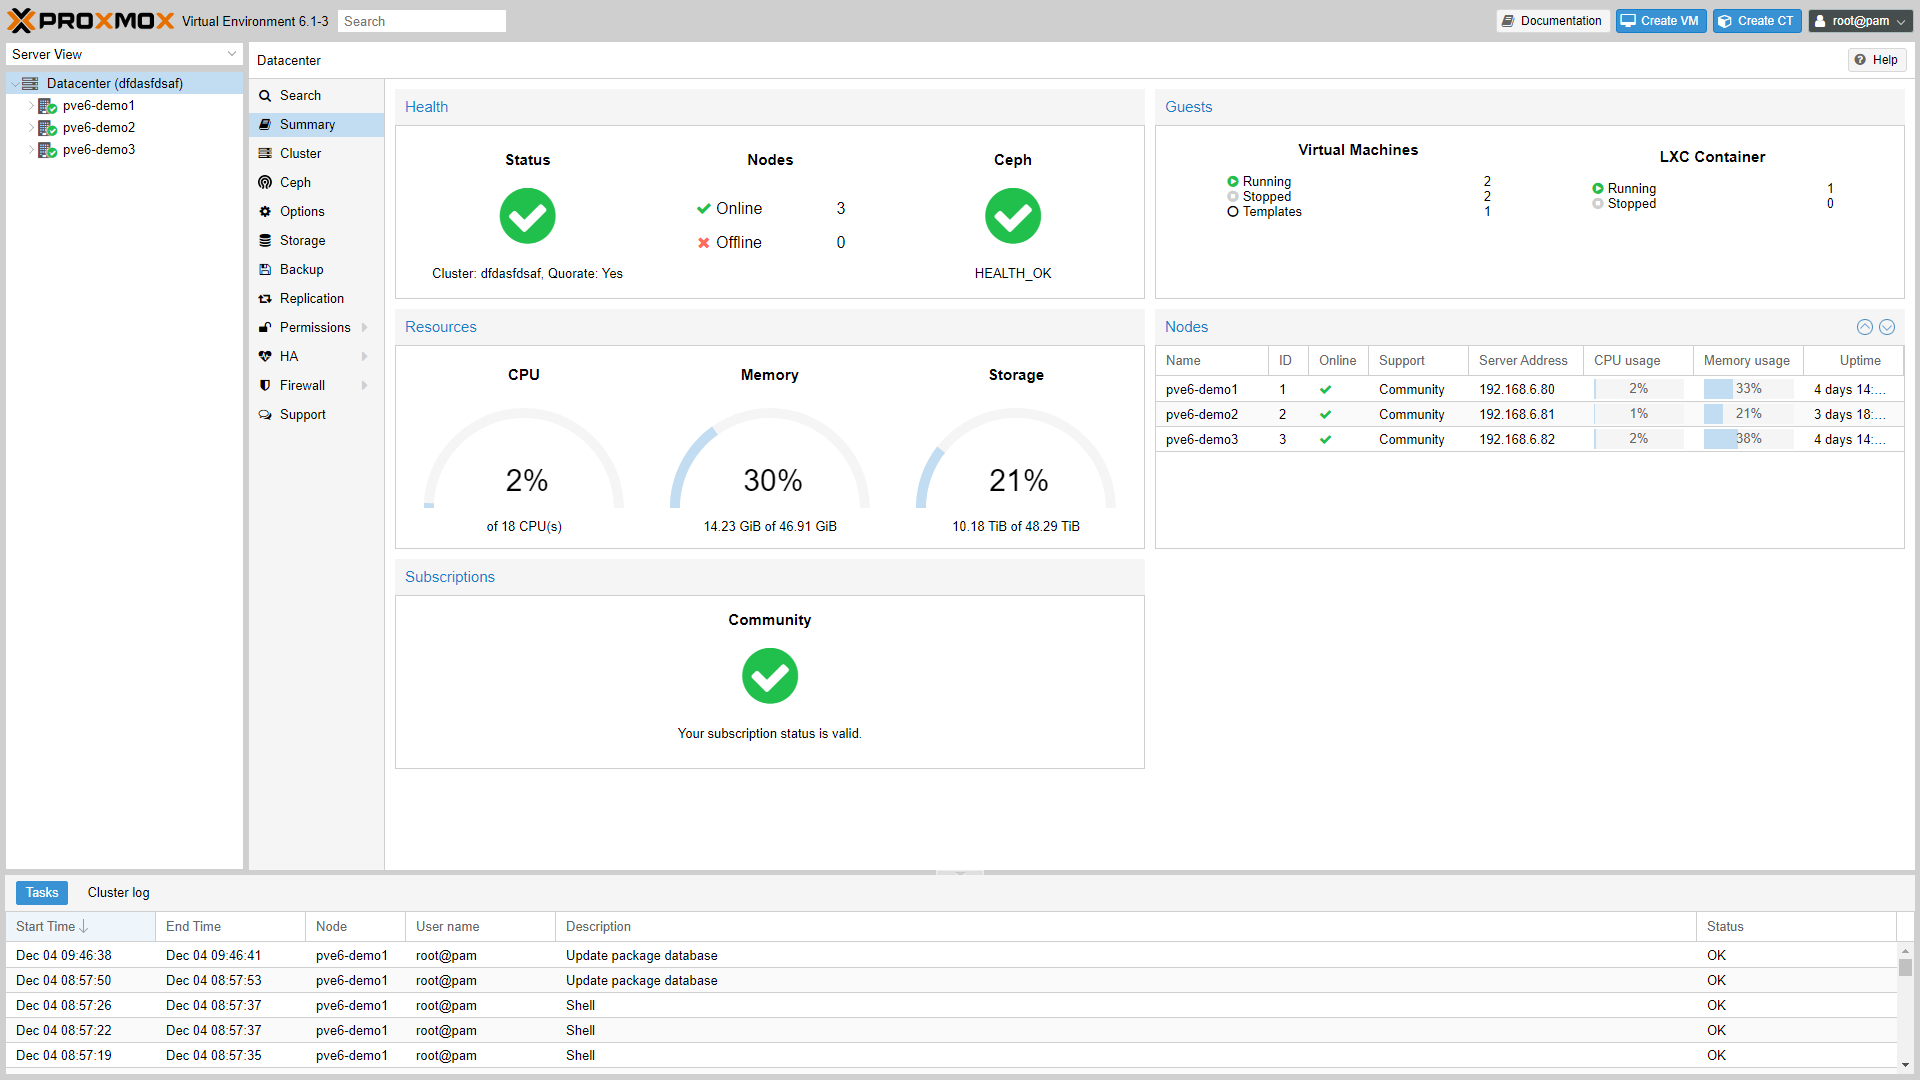 Proxmox VE 6.1 - Overview cluster summary